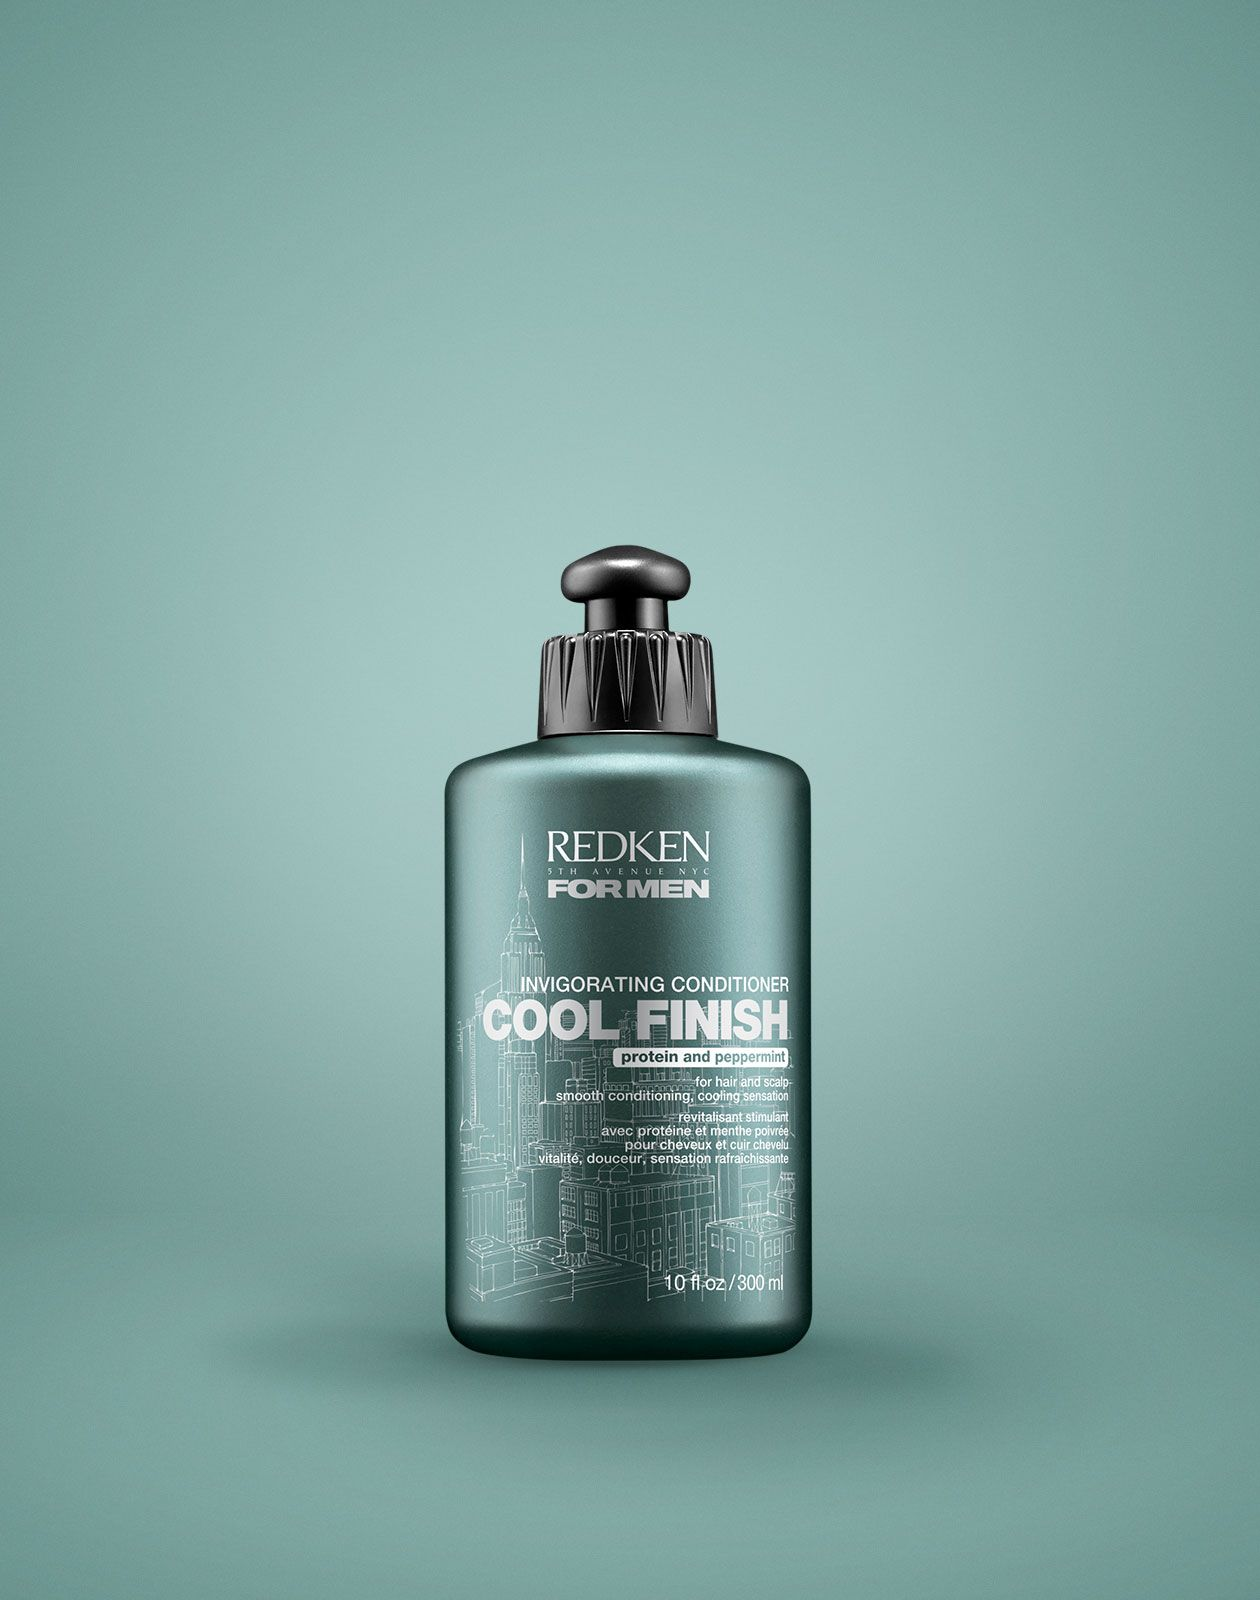 Redken for men cool finish invigorating mint conditioner helps hair